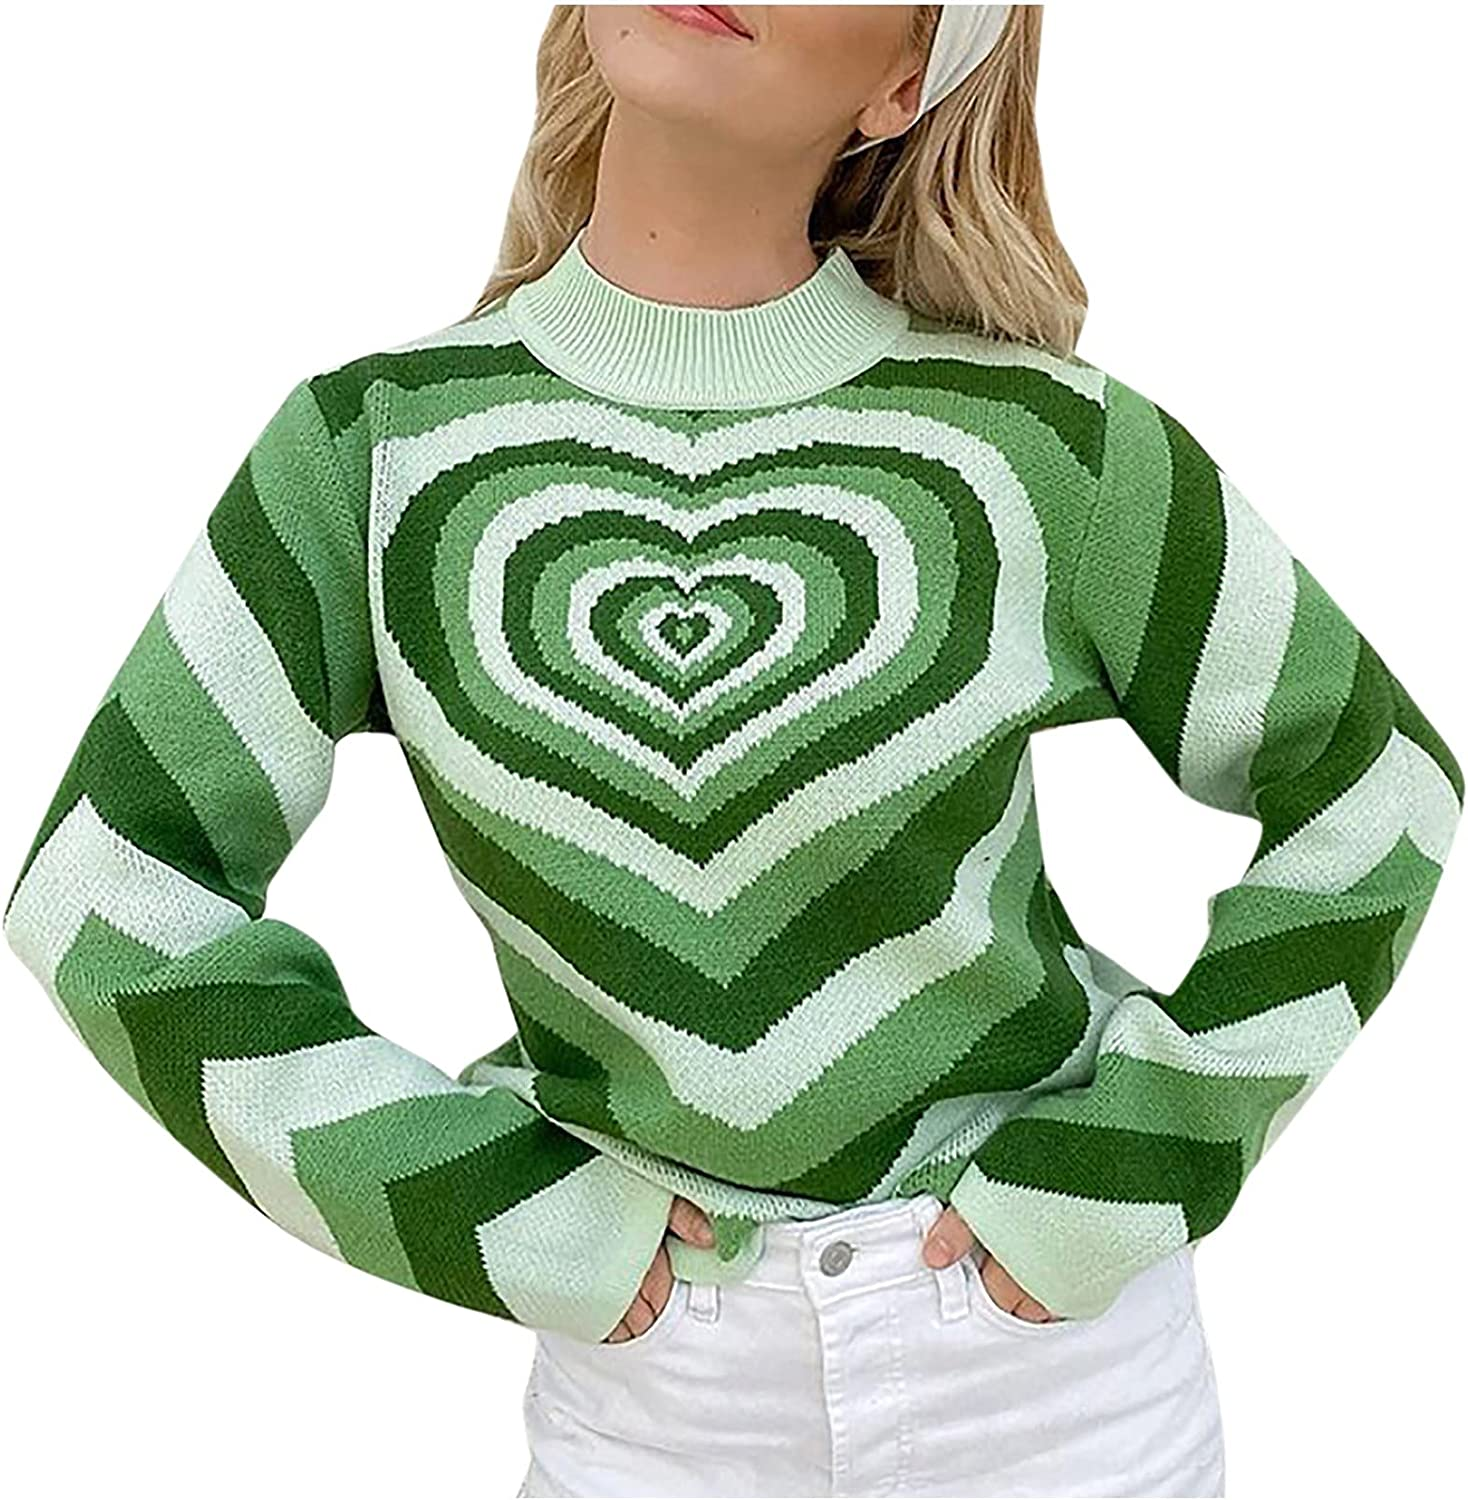 Sweaters for Women,Womens Tops Comfy O-Neck Winter Casual Long-Sleeve Sexy Red Heart Printed Pullover Ladies Knitted Blouse